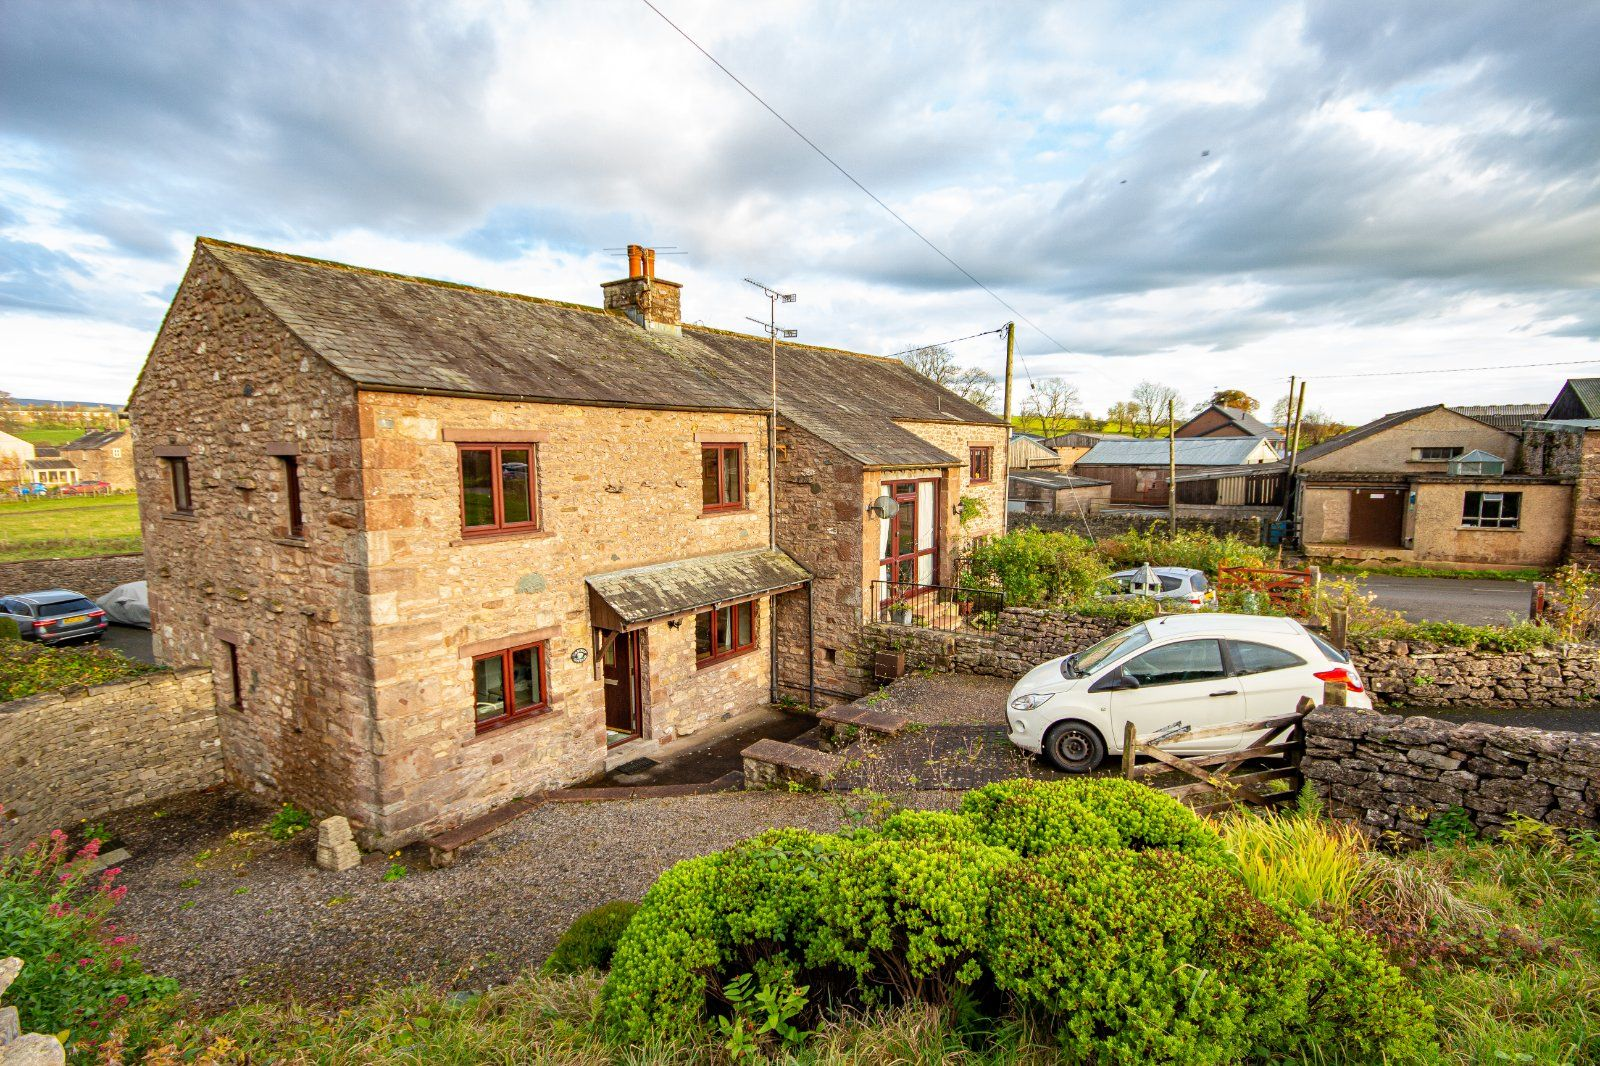 Property photo 1 of 13. Cartref Cottage